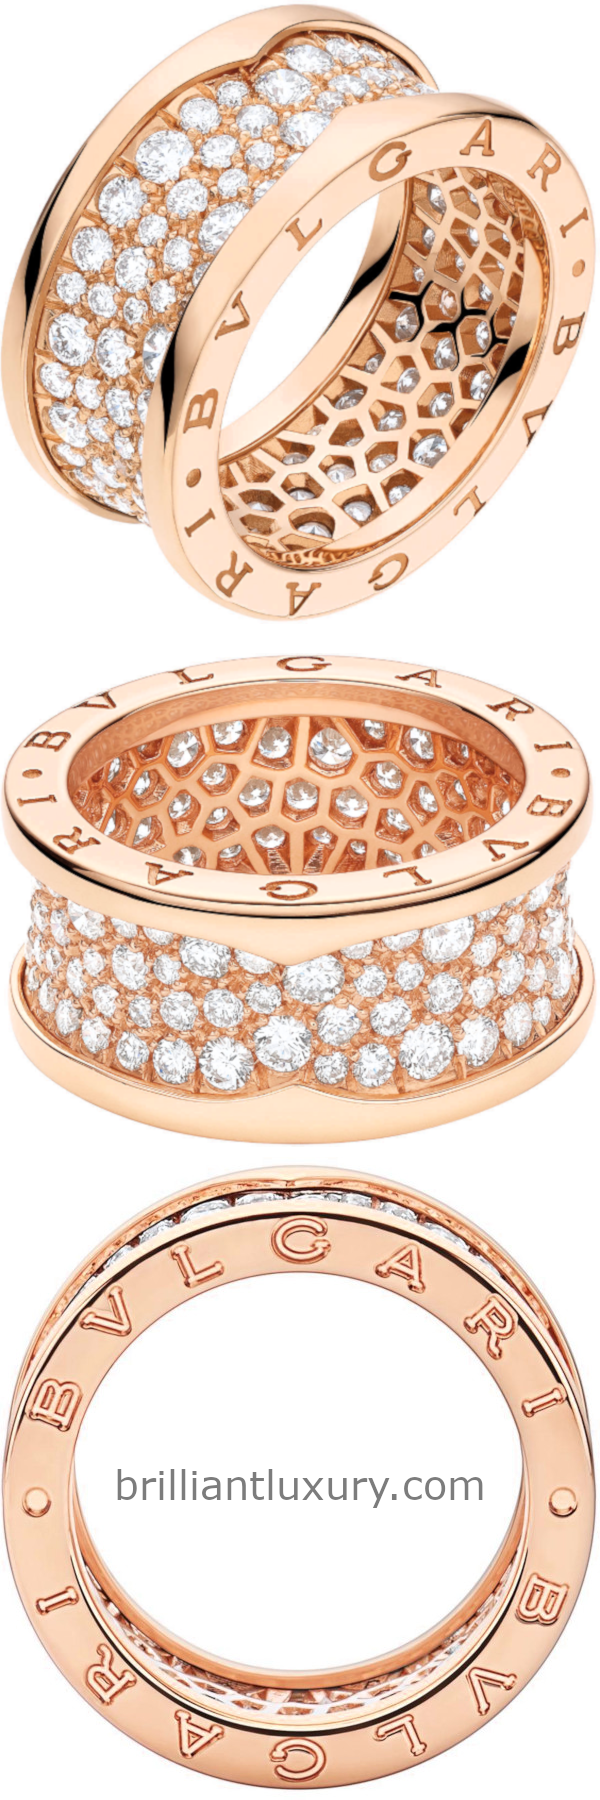 Bvlgari B.Zero1 four-band ring in 18kt rose gold set with pavé diamonds on the spiral